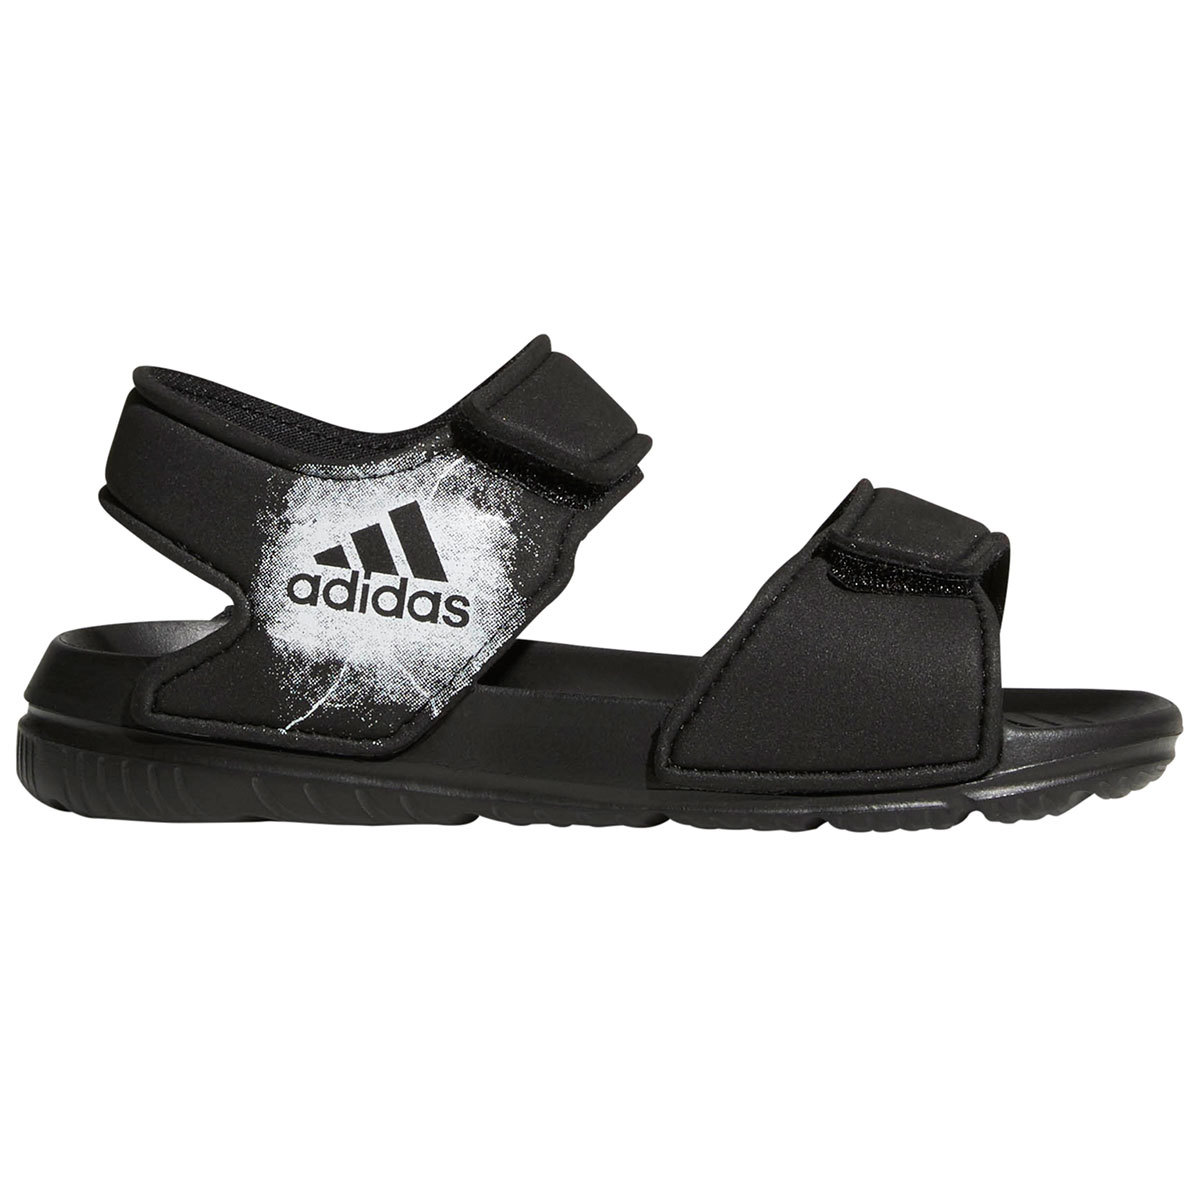 Adidas Toddler Swim Alta I Sandals Nnm0wv8